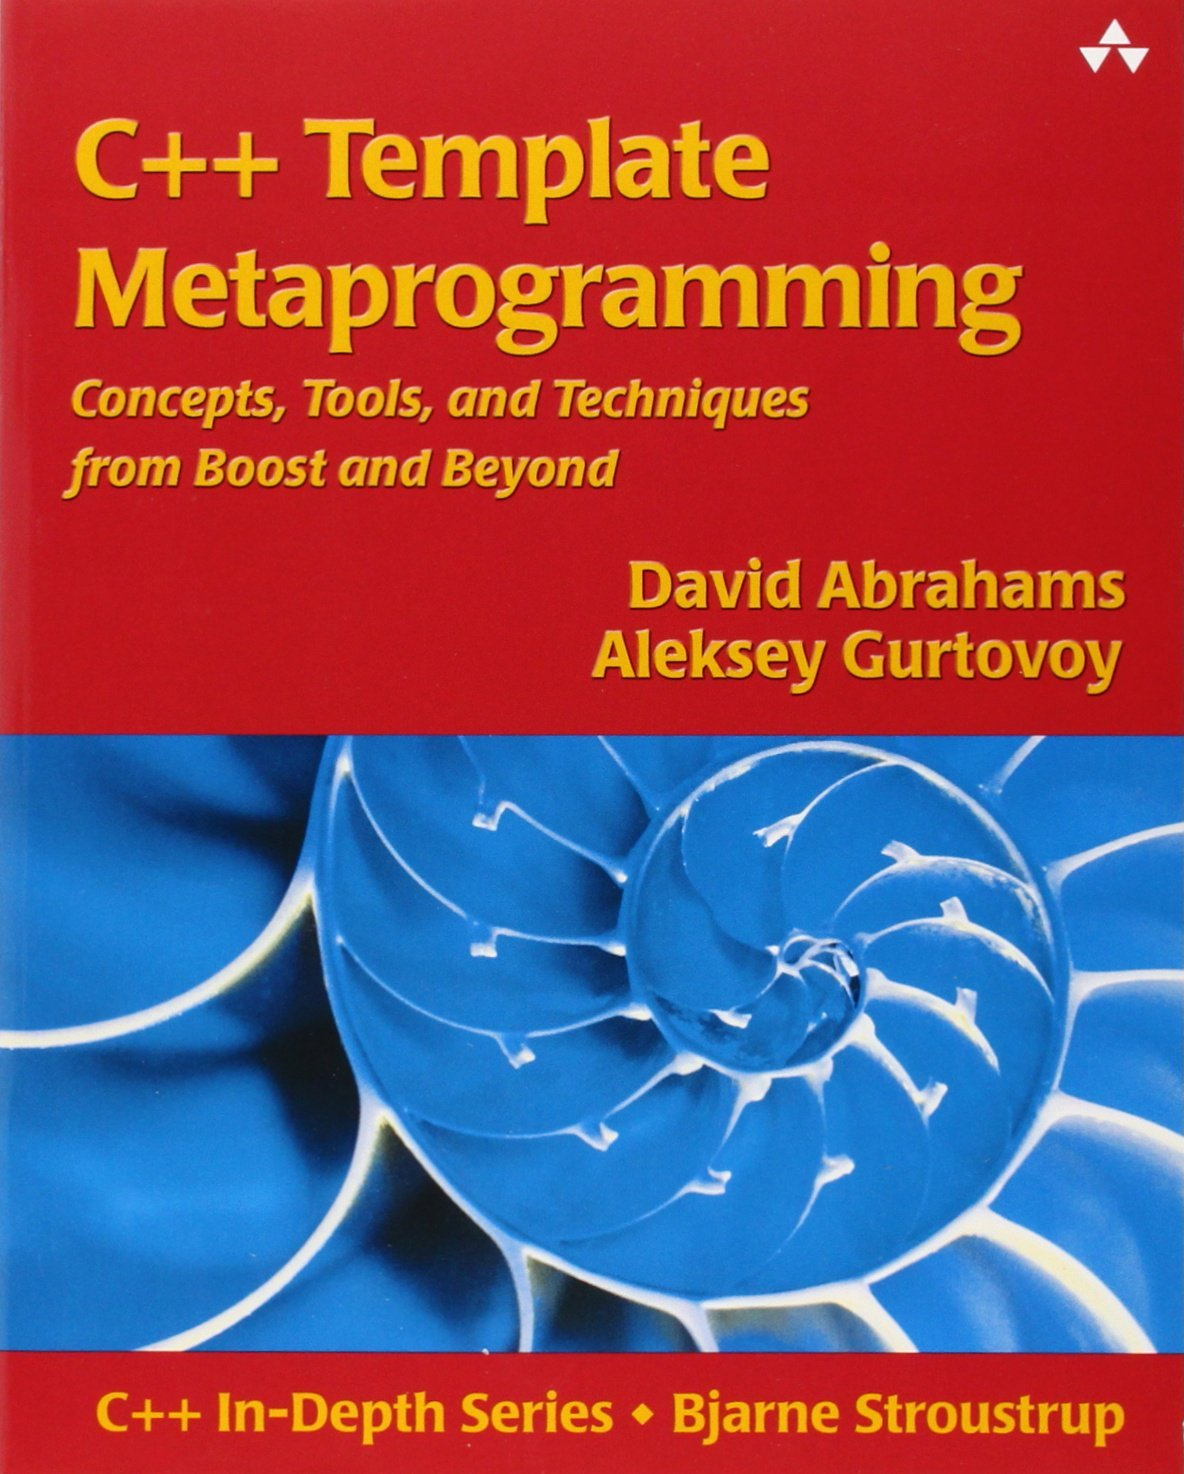 C++ Template Metaprogramming: Concepts, Tools, and Techniques from Boost and Beyond (C++ in Depth) by David Abrahams (10-Dec-2004) Paperback